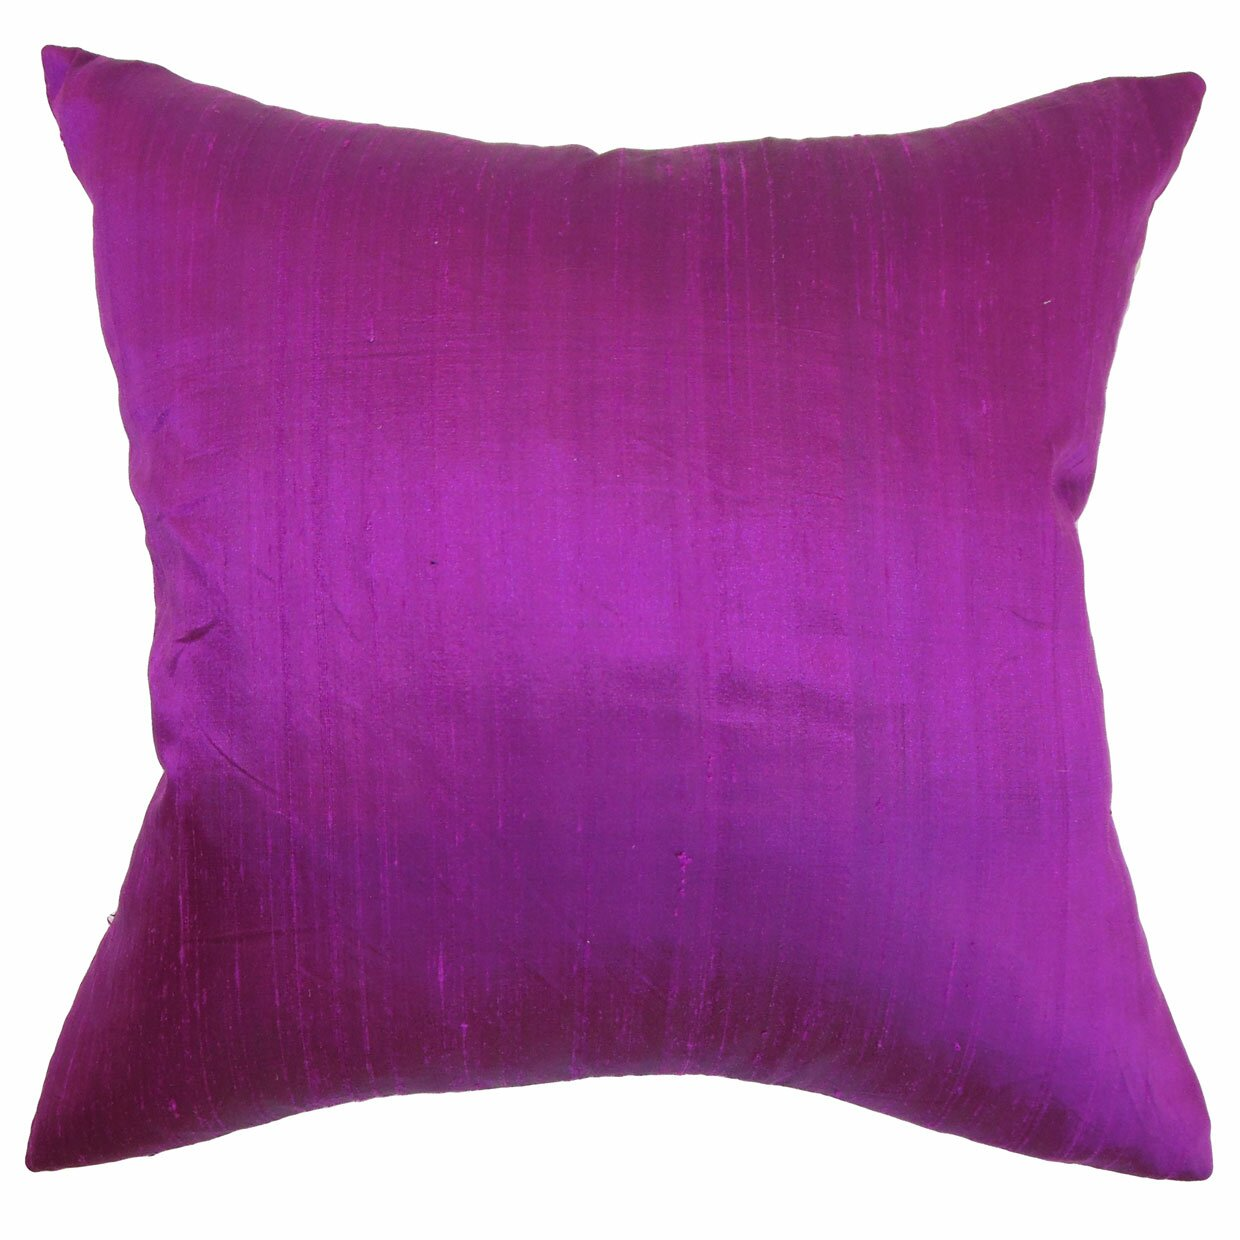 Purple Silk Throw Pillows : The Pillow Collection Ekati Plain Silk Throw Pillow & Reviews Wayfair